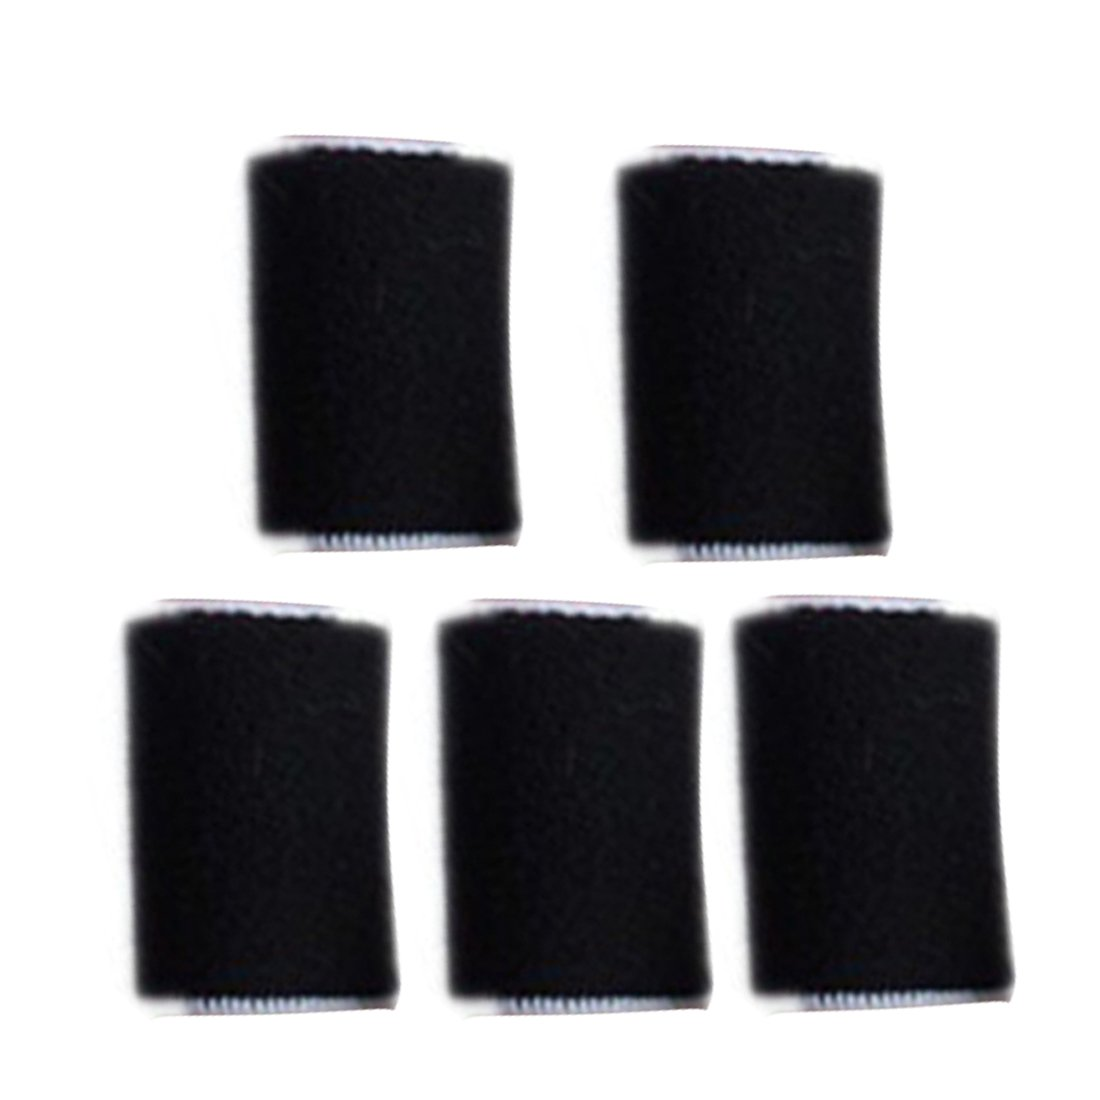 Finger Splint Guard Sports Bands Bandage Support Wrap Basketball Volleyball Football Fingerstall Sleeve Caps Protector